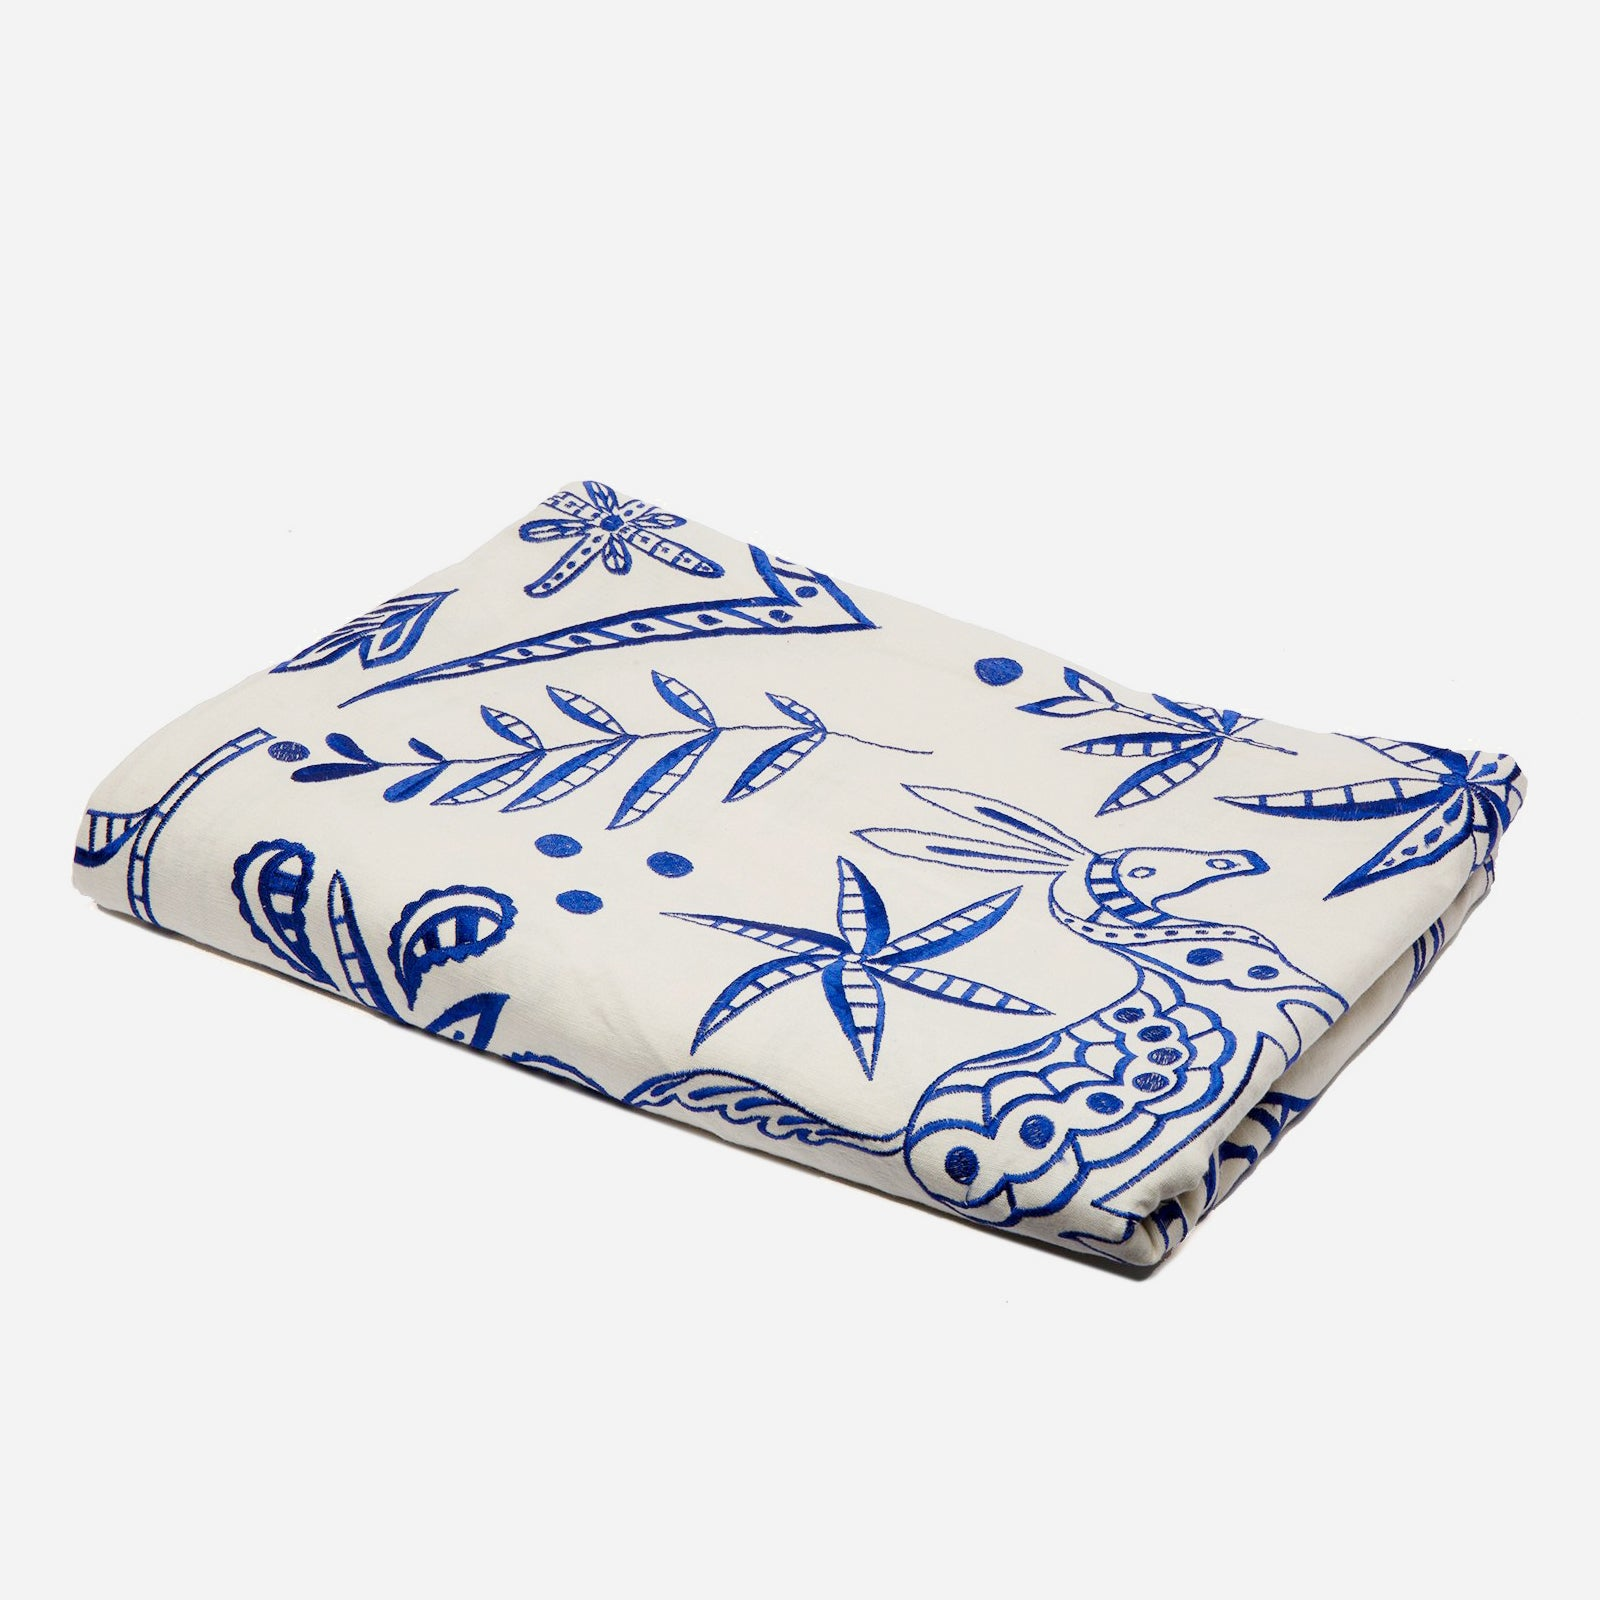 Embroidered Tablecloth Veracruz Navy - Frances Valentine